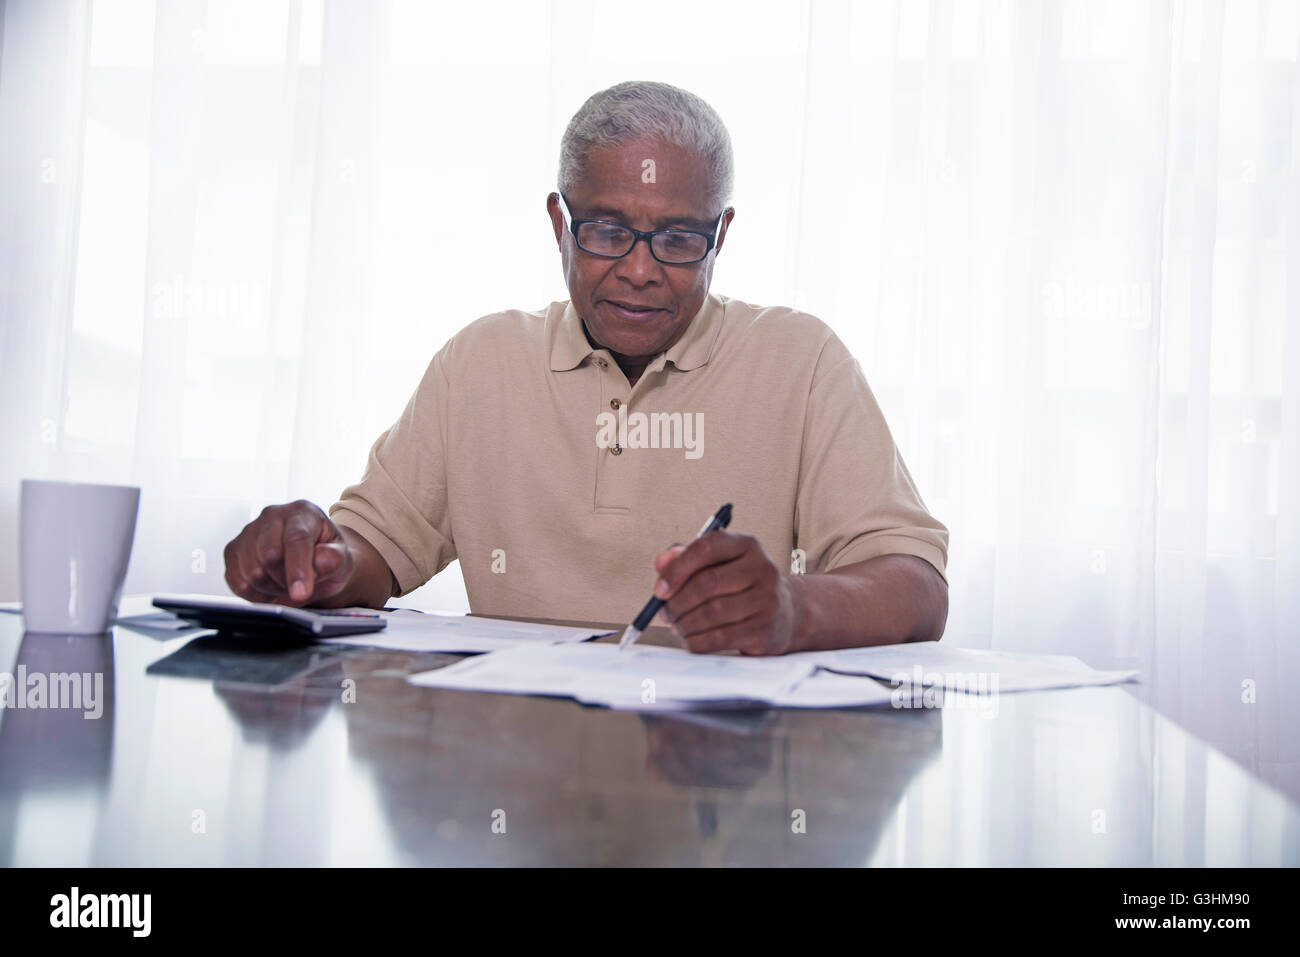 Senior man sitting at table, doing paperwork - Stock Image